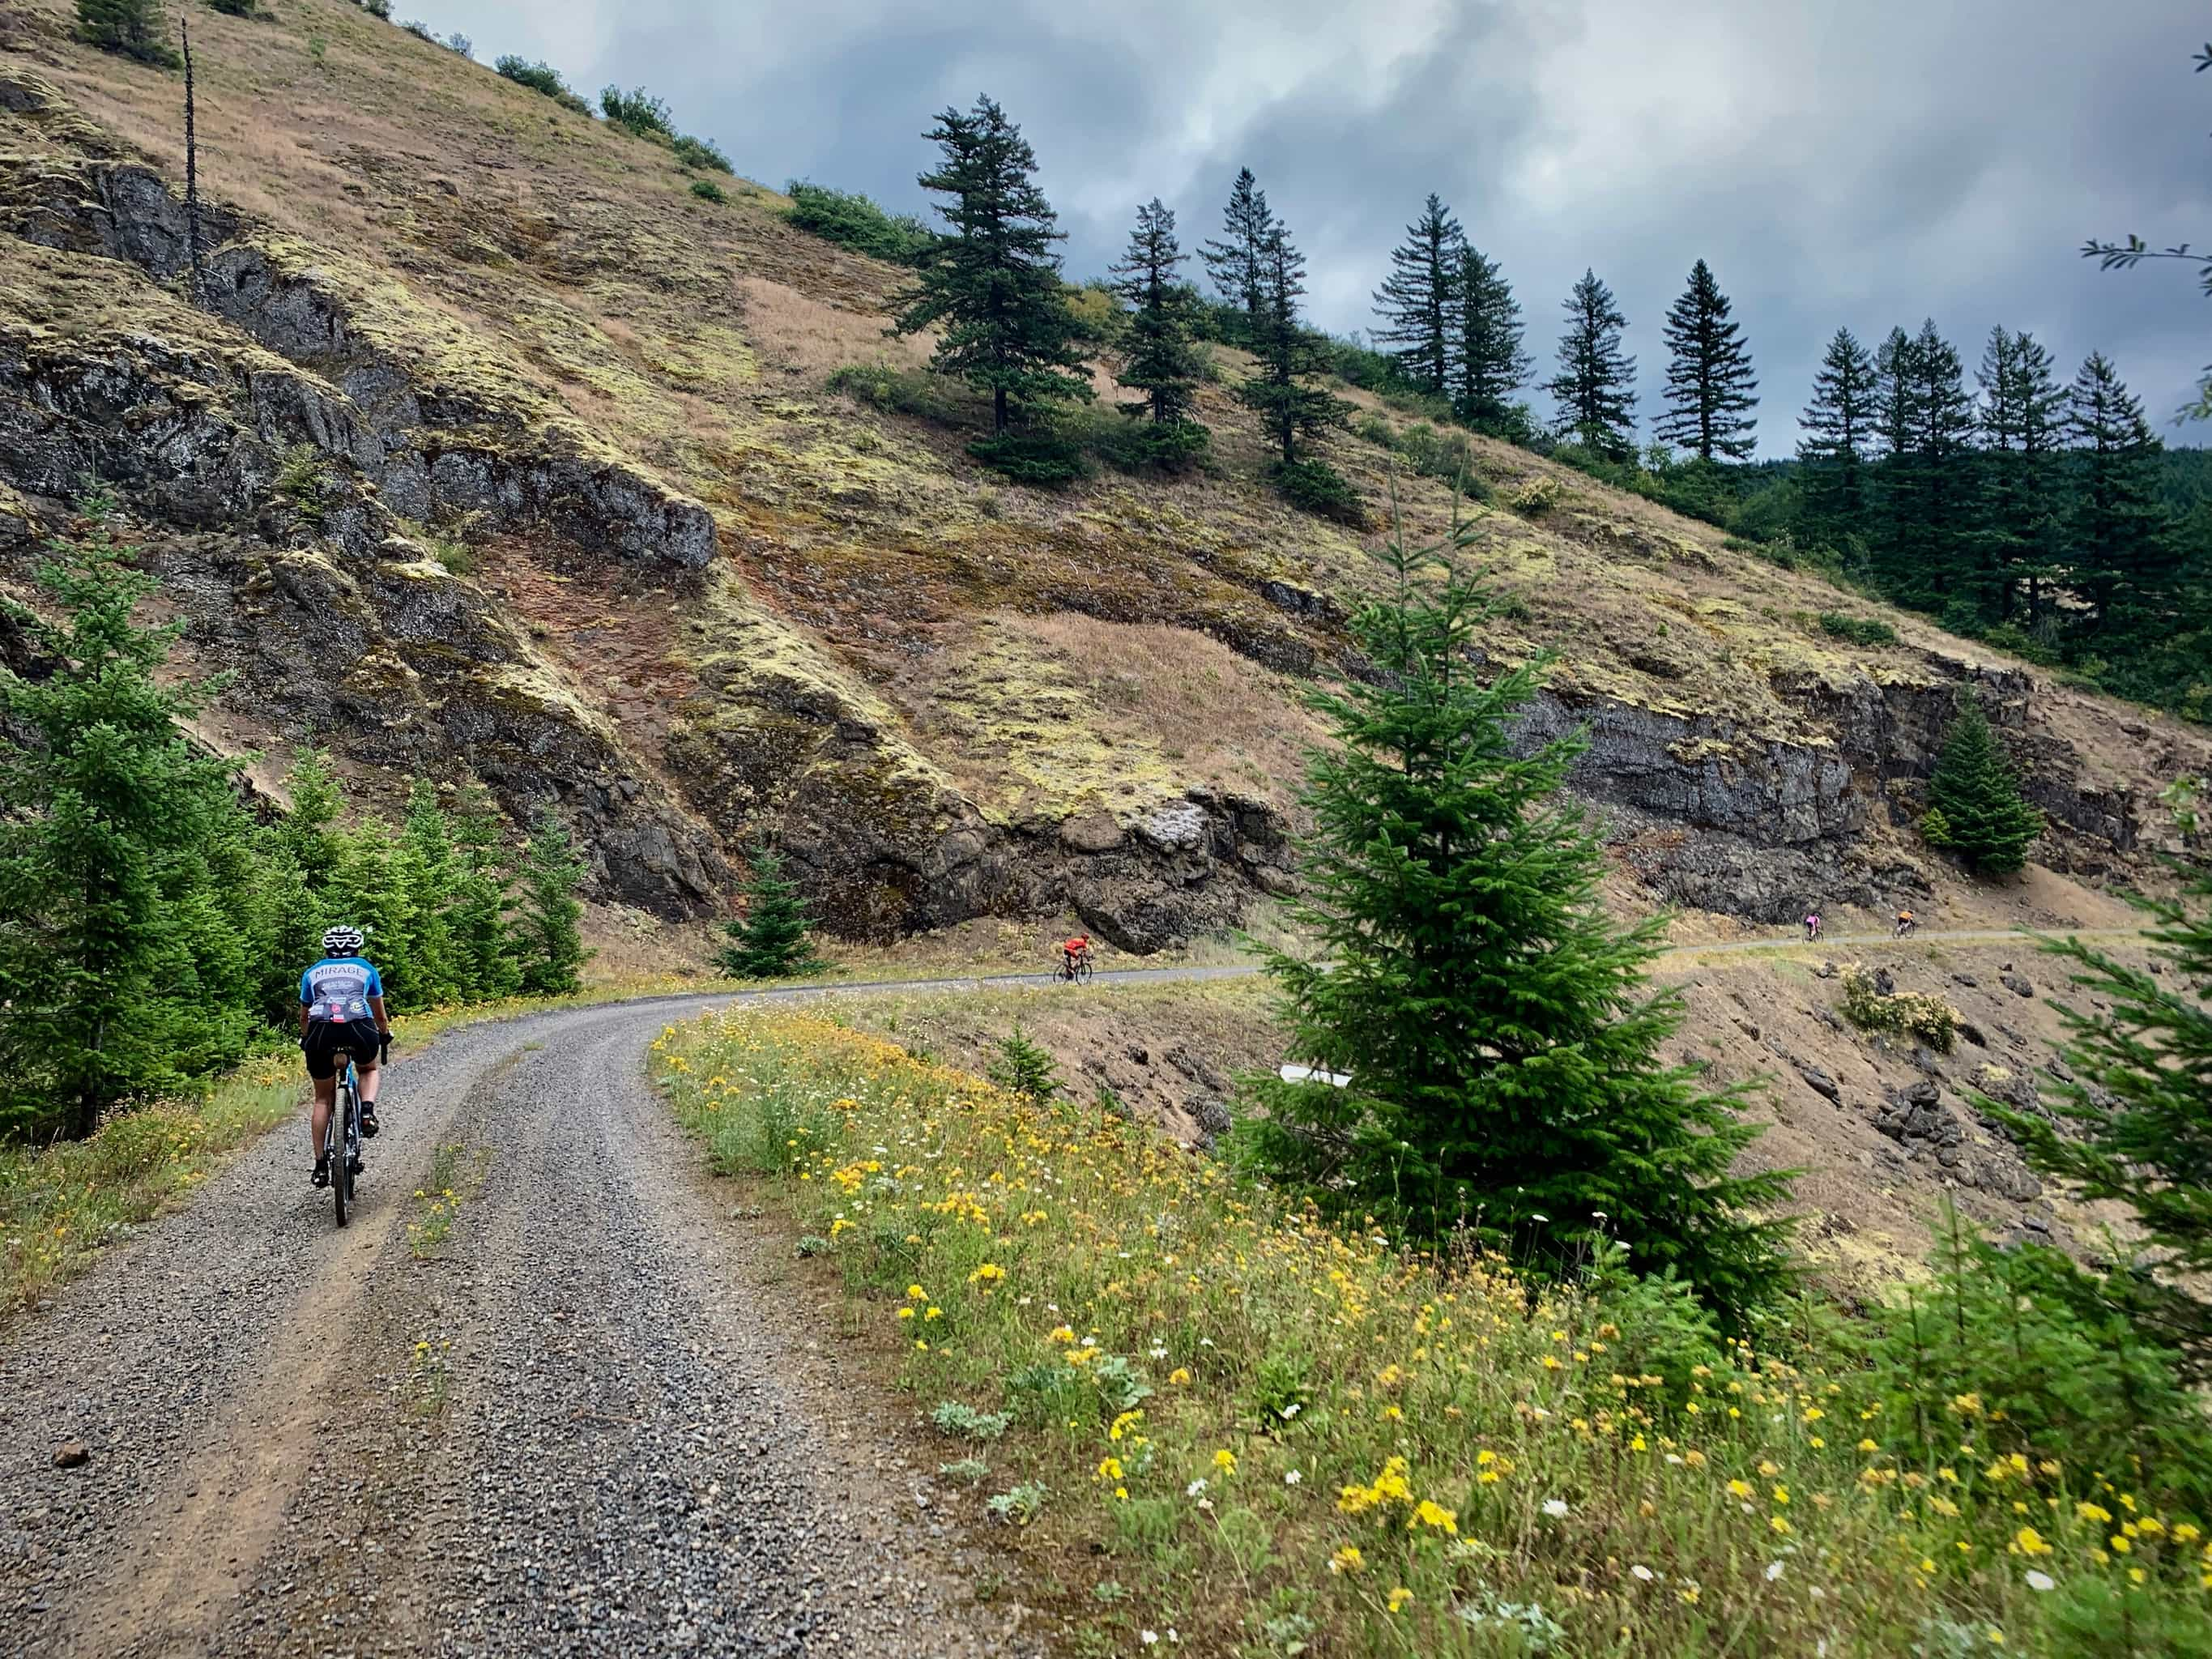 Cyclists descending gravel road NF-68 near the Big Lava Bed.